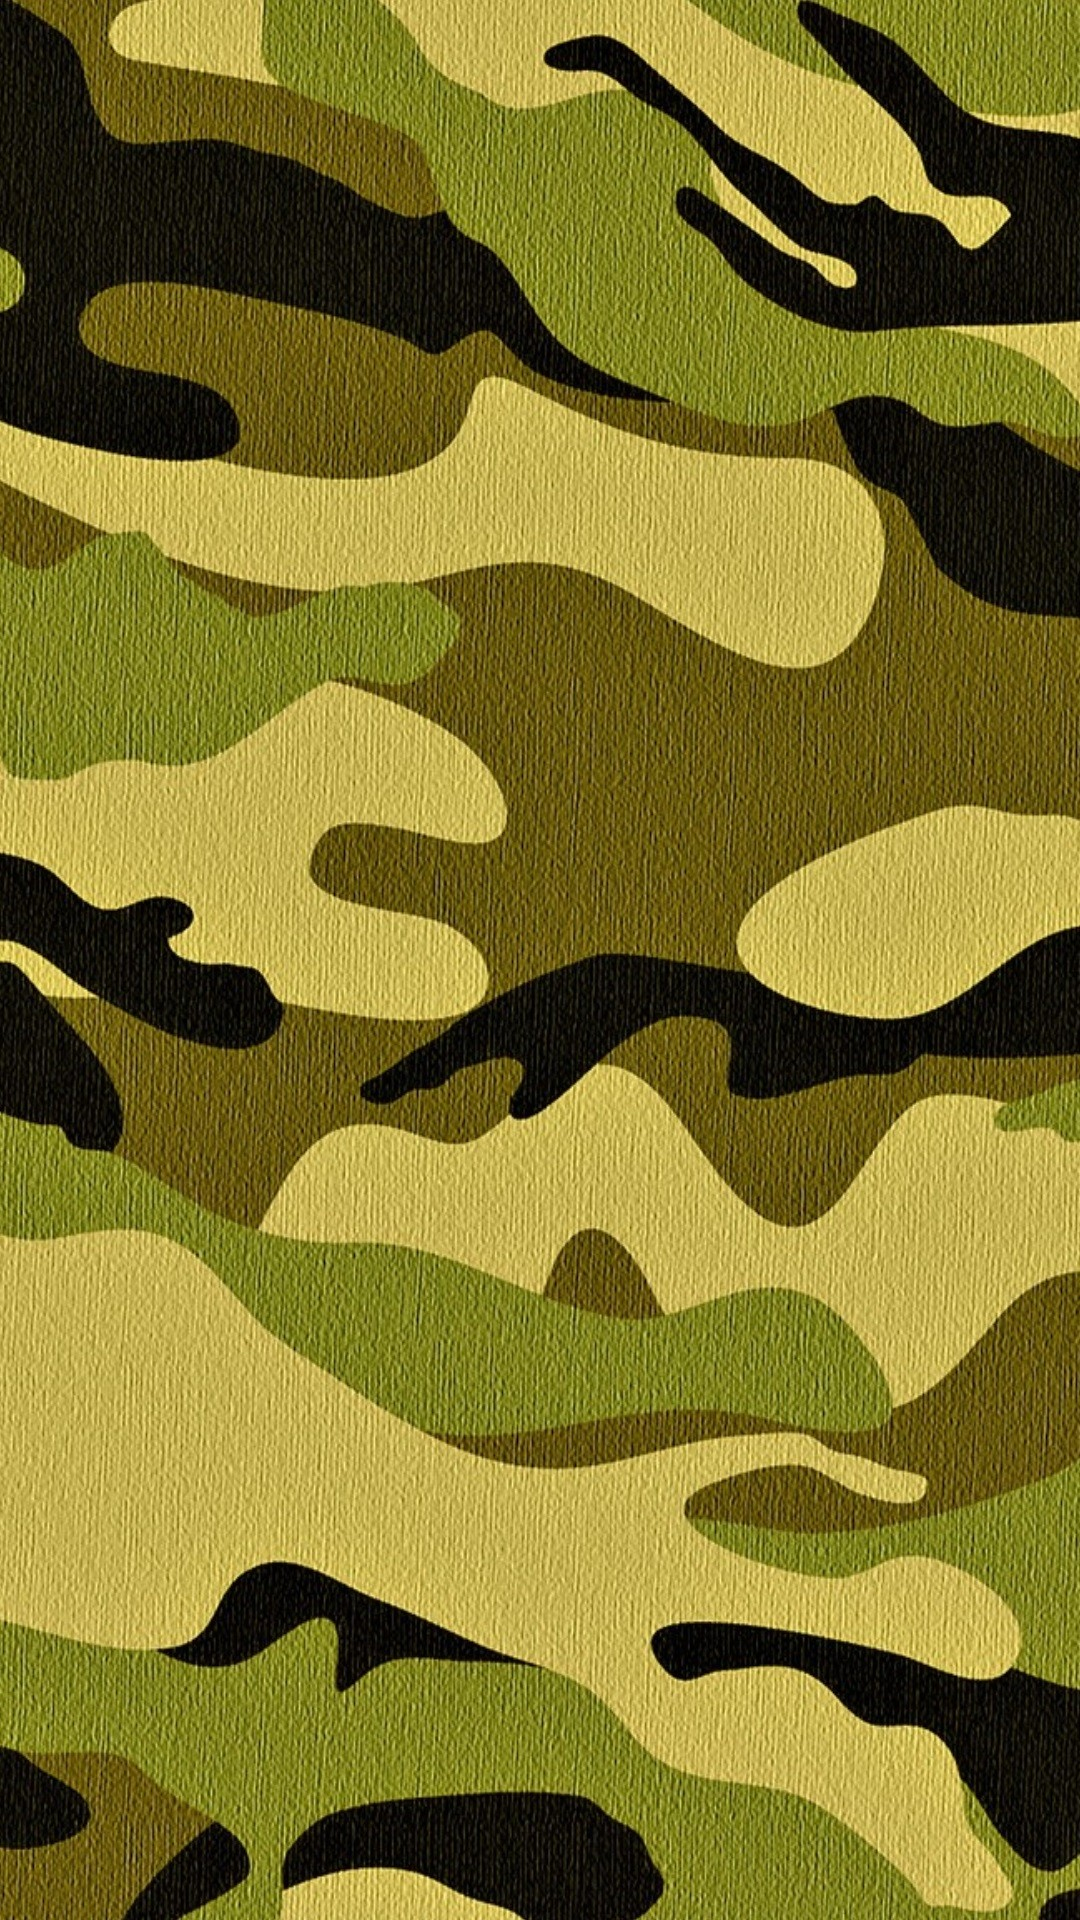 camo desktop wallpaper full screen - photo #39